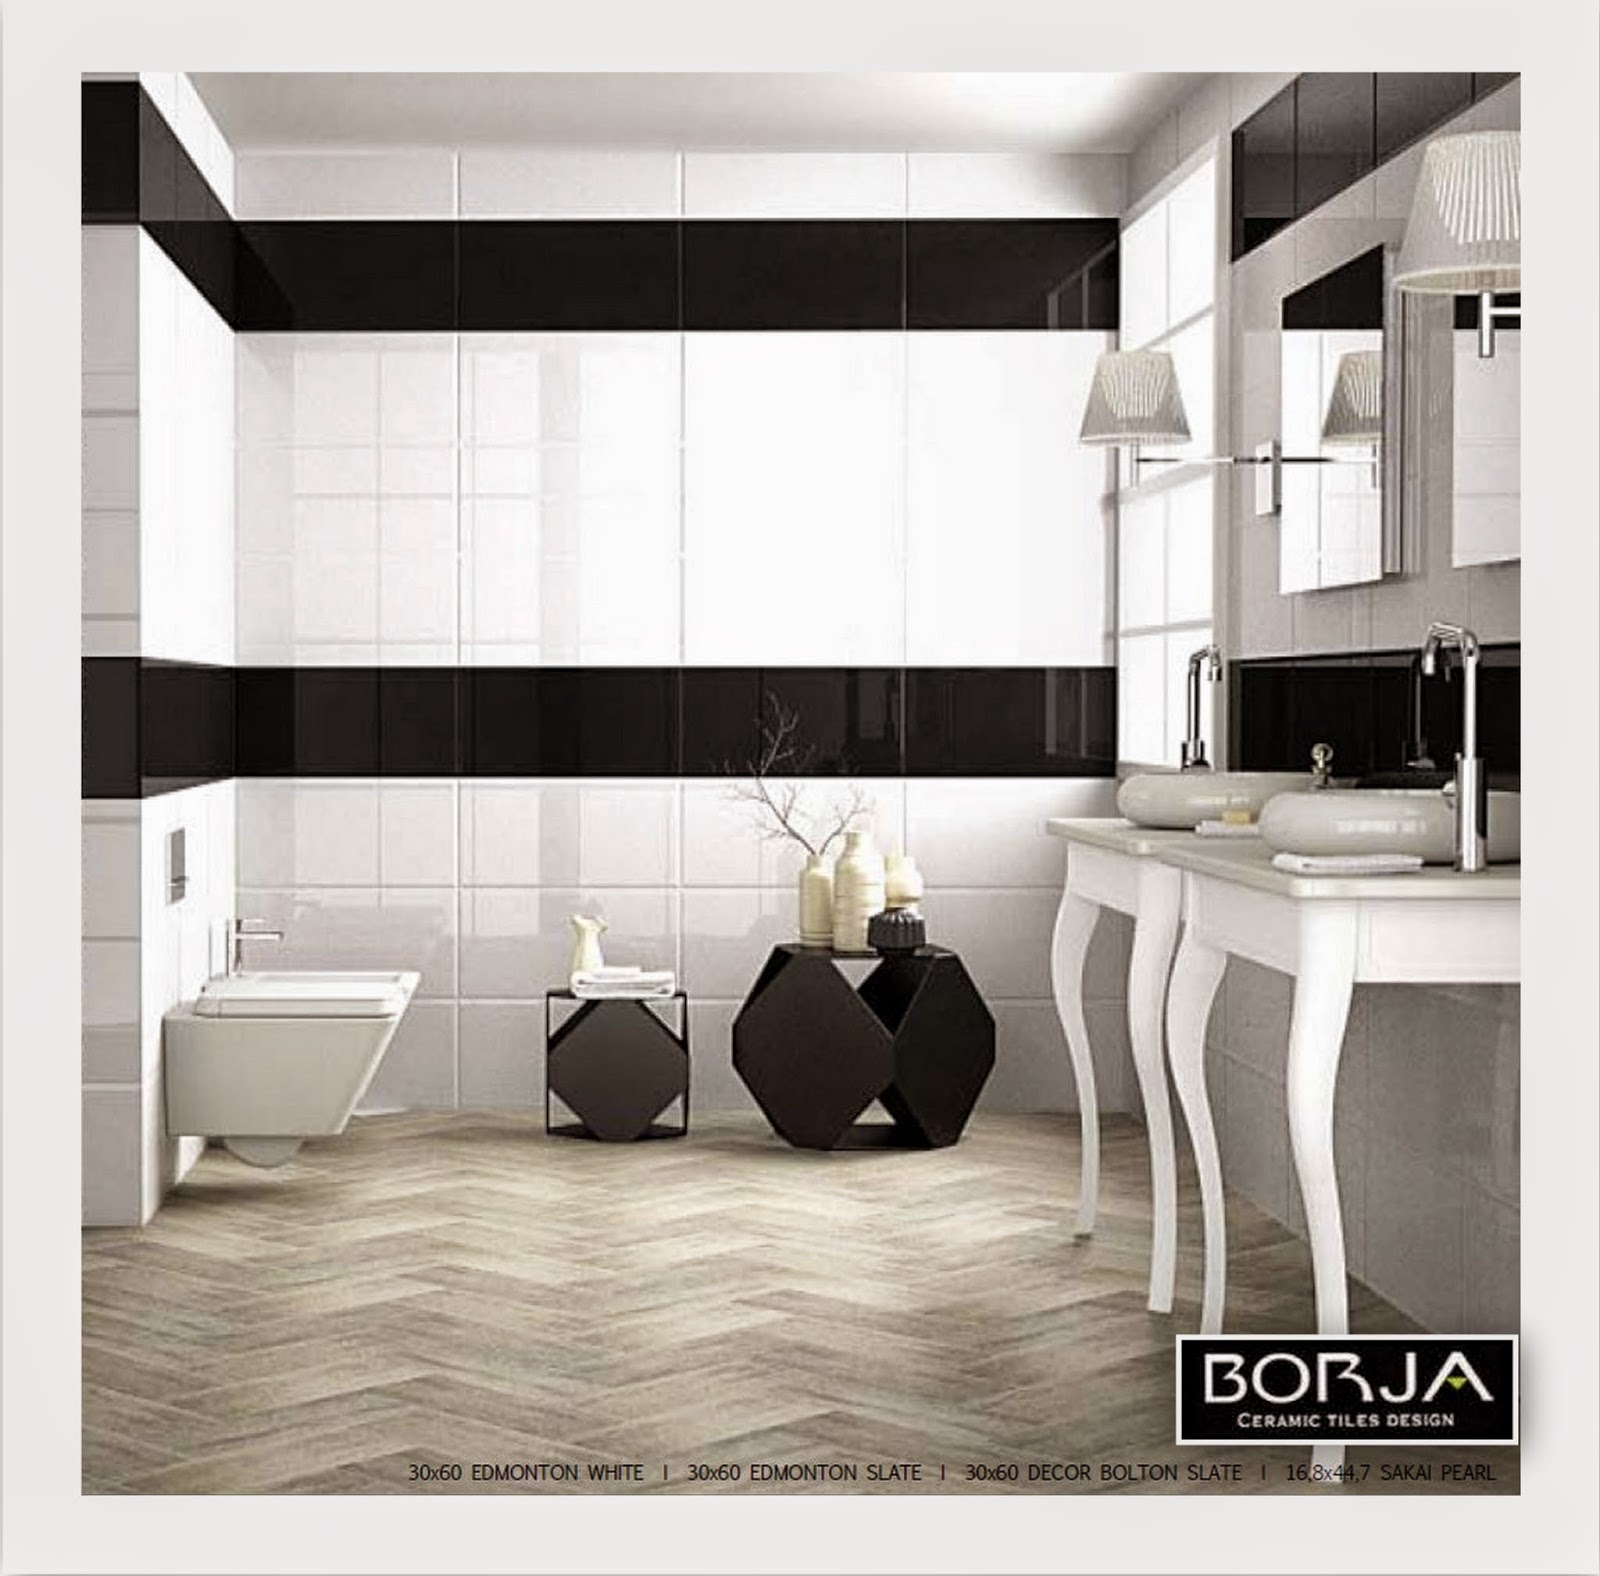 Borja ceramic tiles design exeder decoration 2014 30x60 for exquisite modern bathrooms with a sophisticated minimalism dailygadgetfo Choice Image